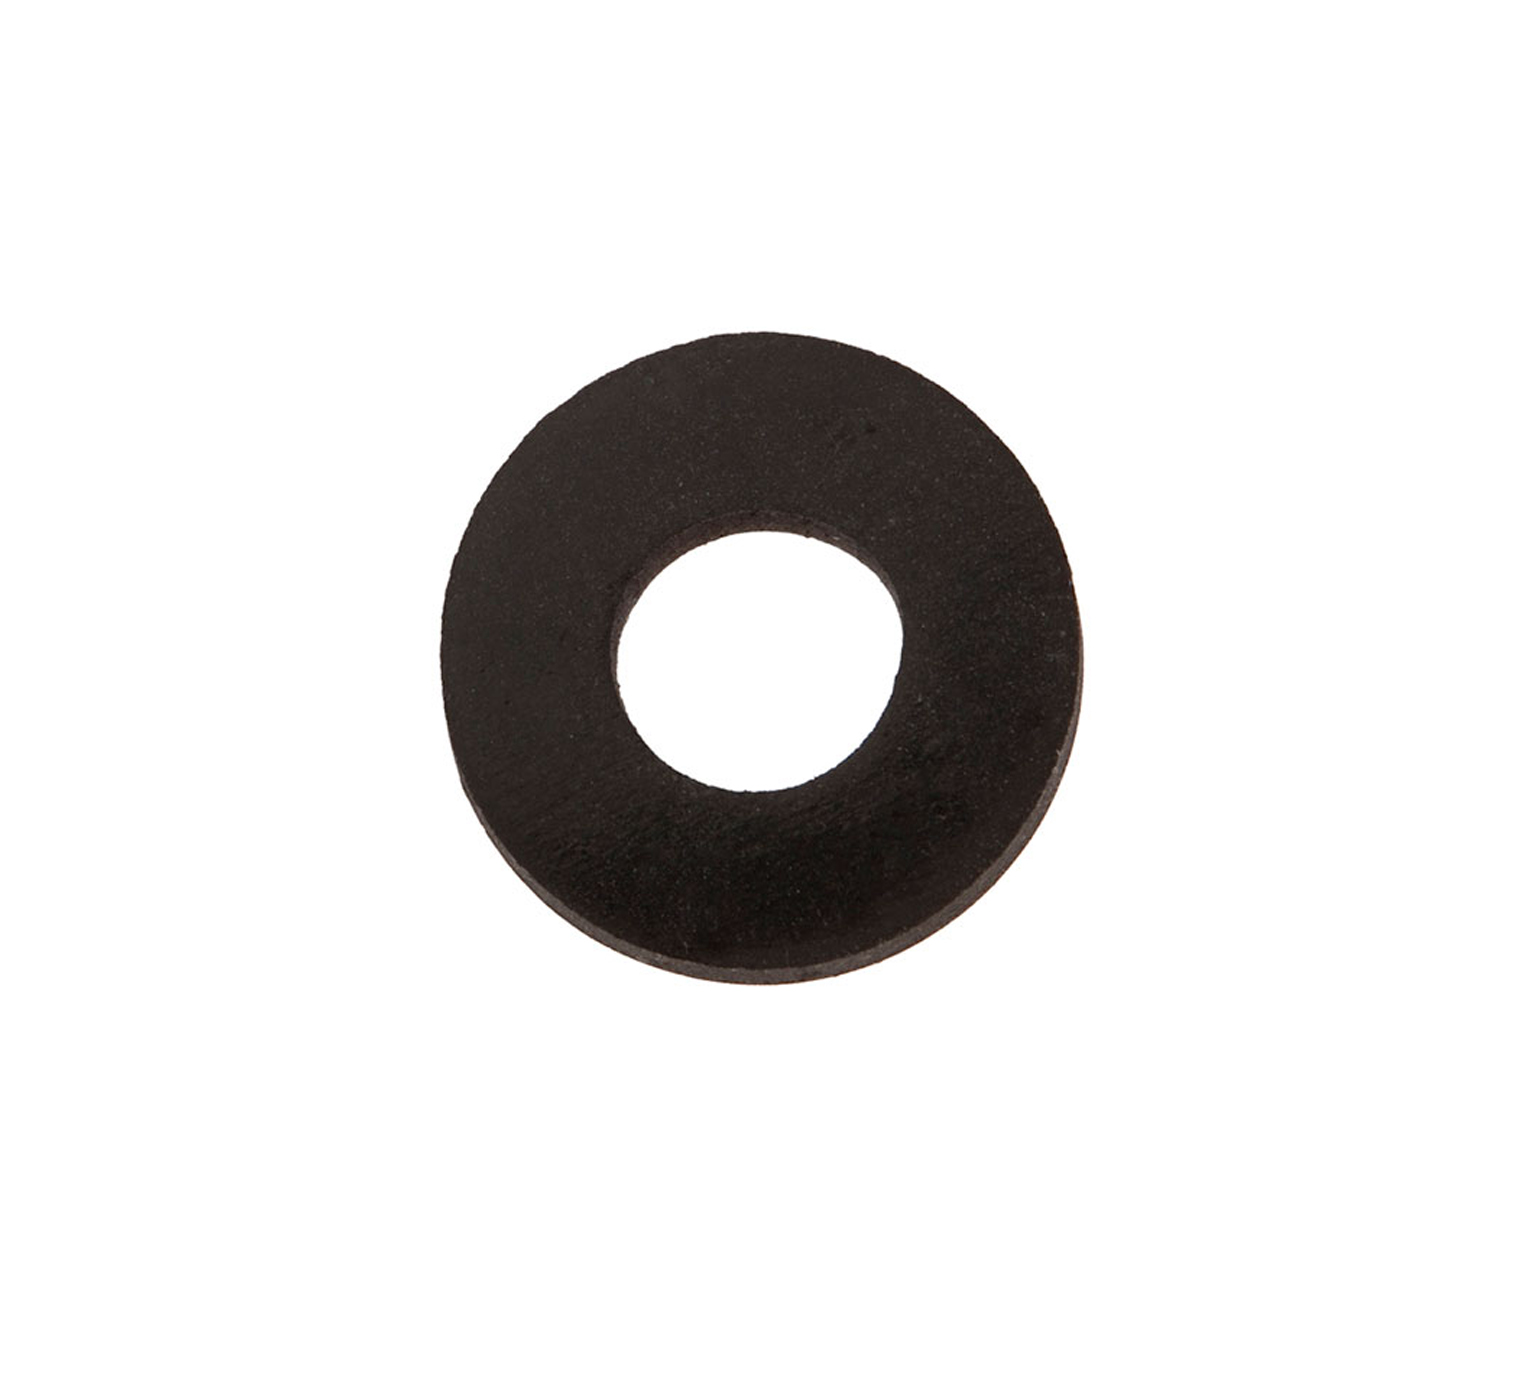 575276000 Rubber Gasket Fitting - 0.75 OD x 0.331 ID x 0.125 in alt 1